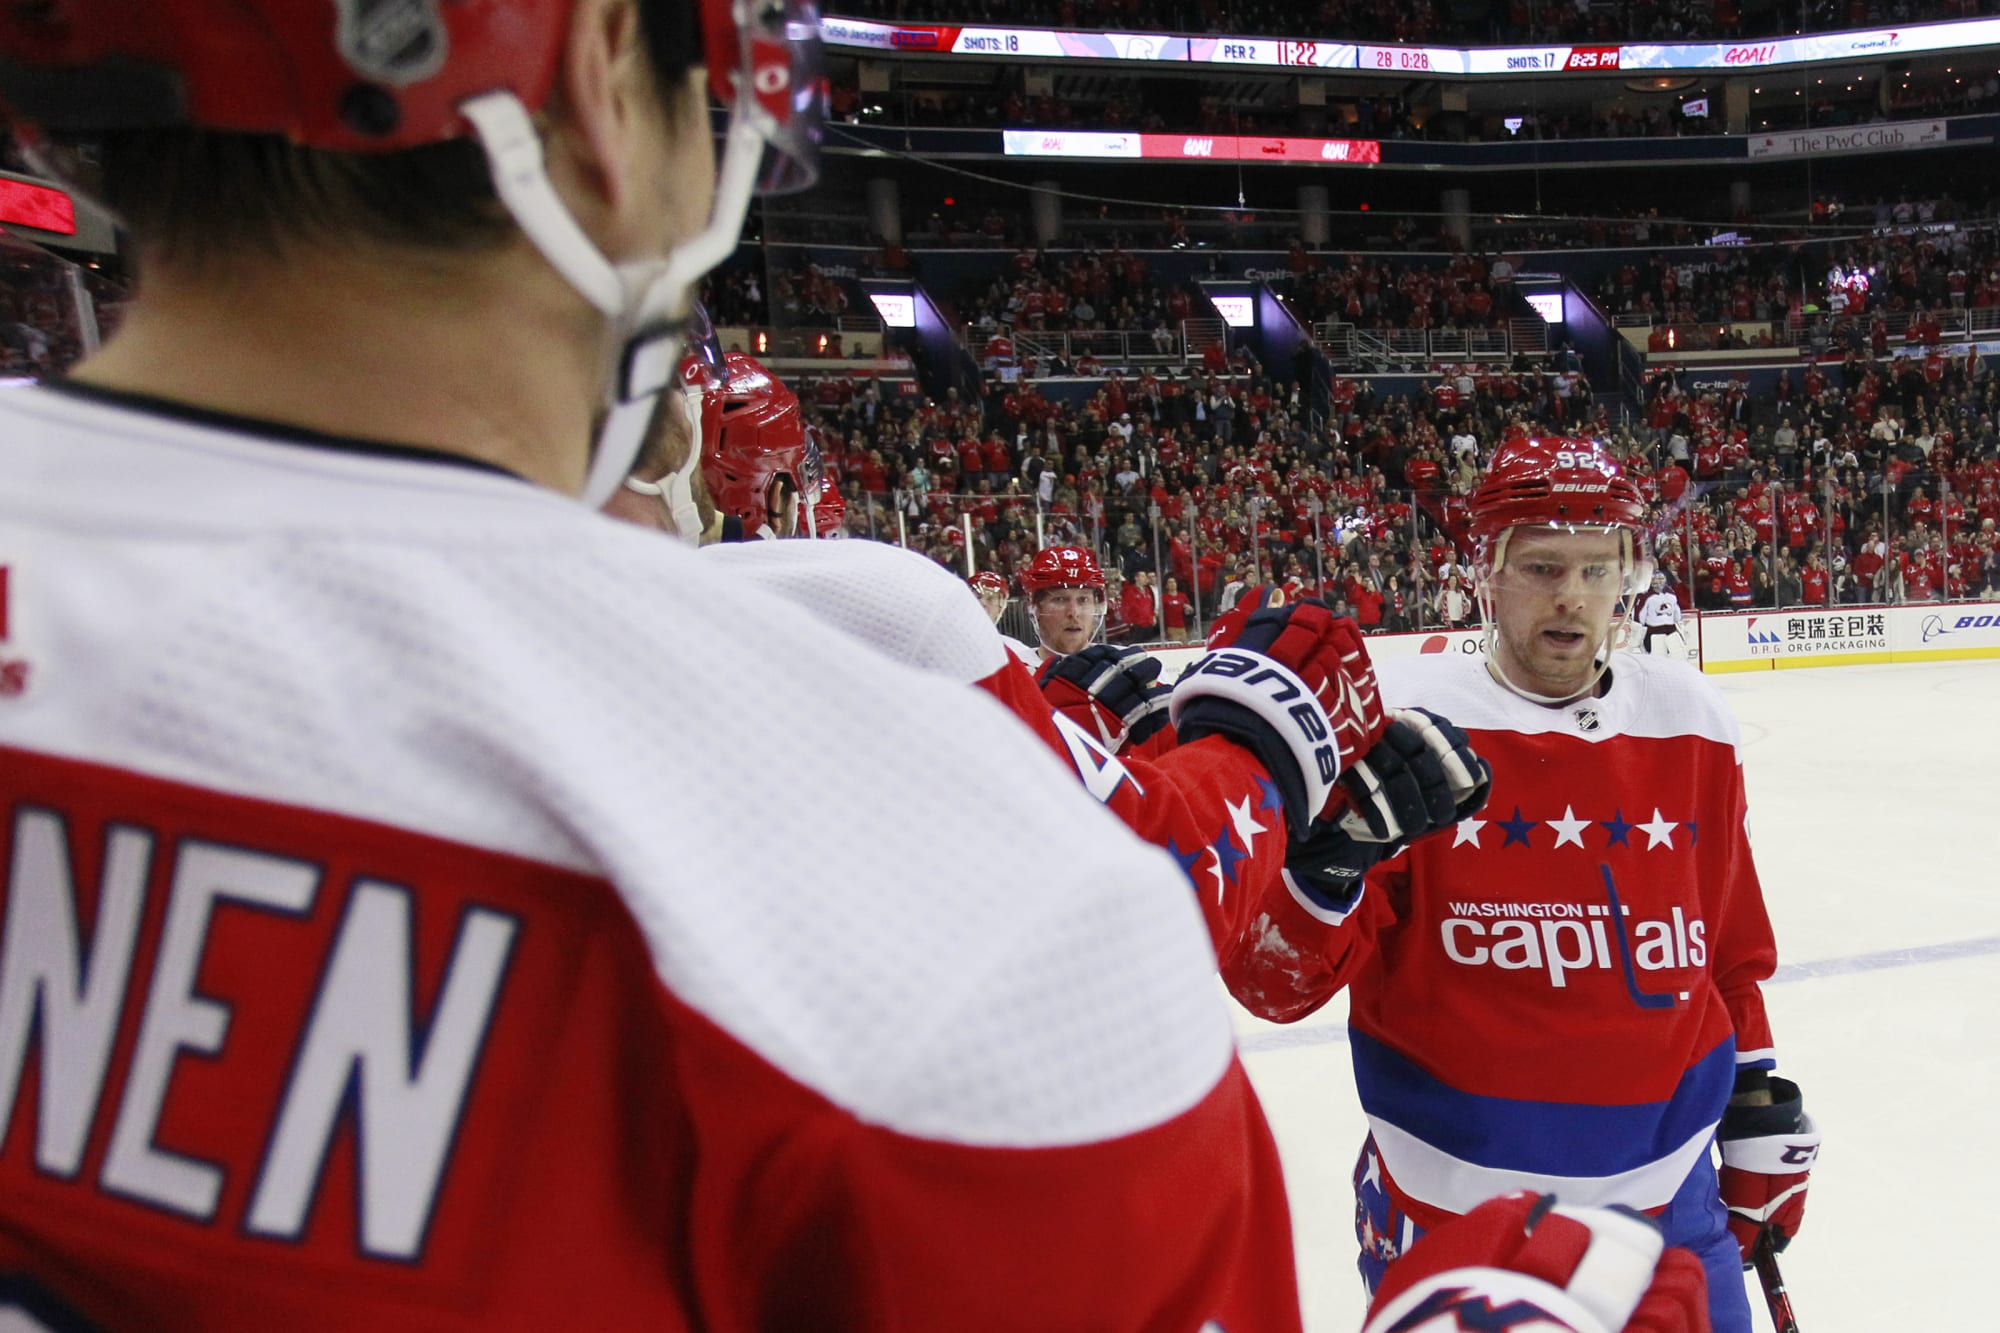 Avalanche vs. Washington Capitals: Date, Time, Betting Odds, Streaming, More